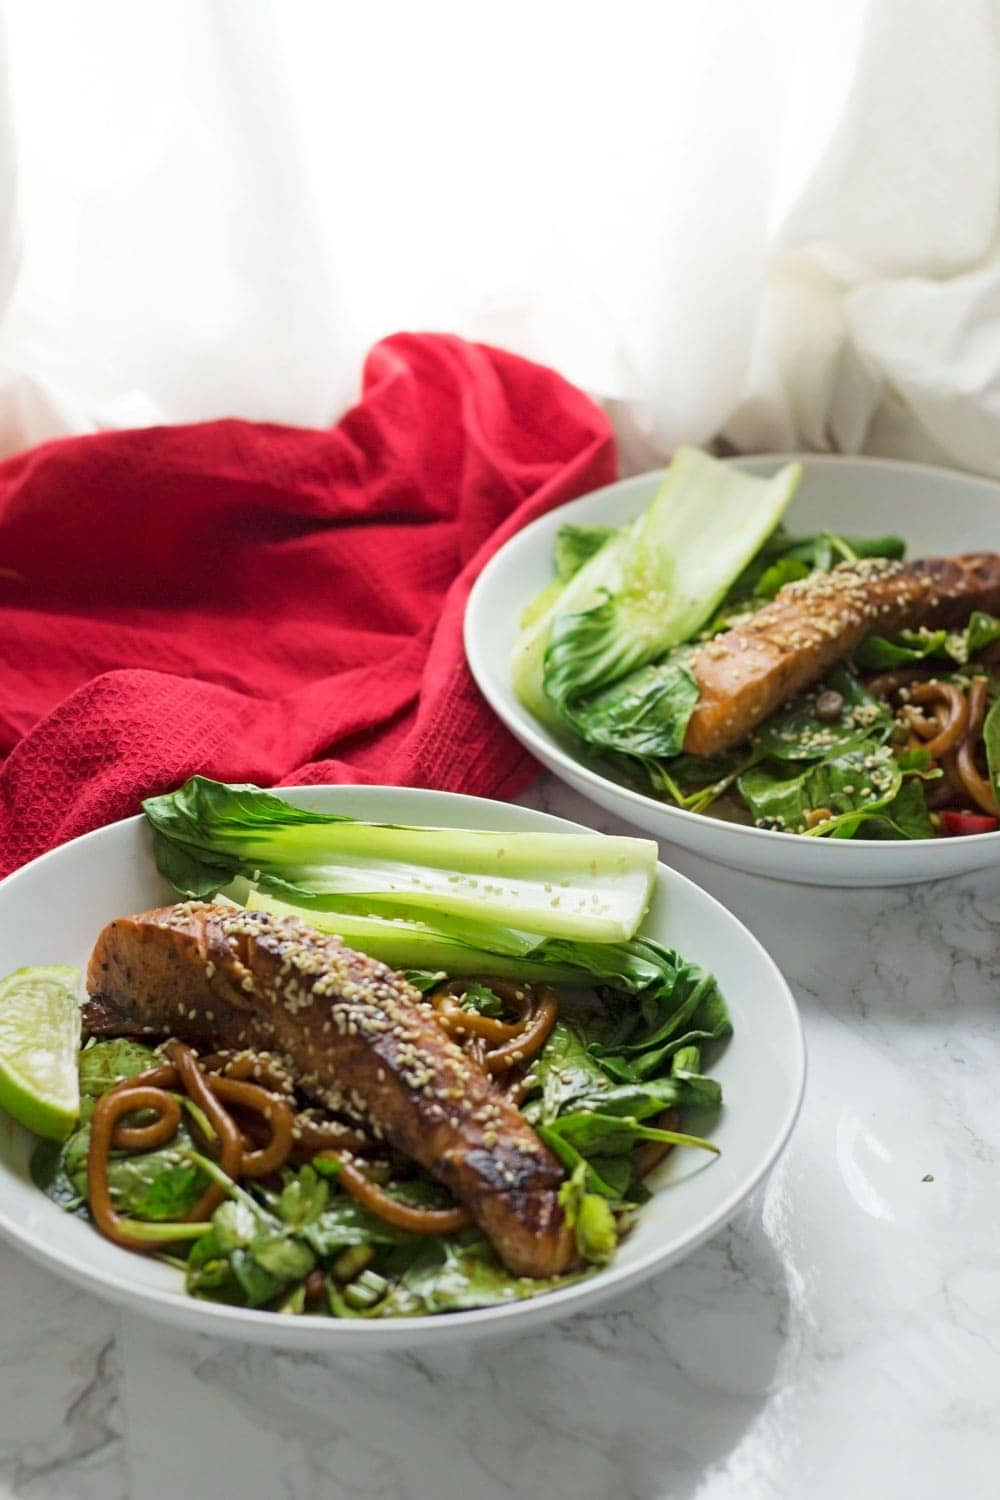 This fresh and healthy teriyaki salmon with udon noodles is a delicious summer dinner with a spicy kick. Serve with spinach and pak choi.